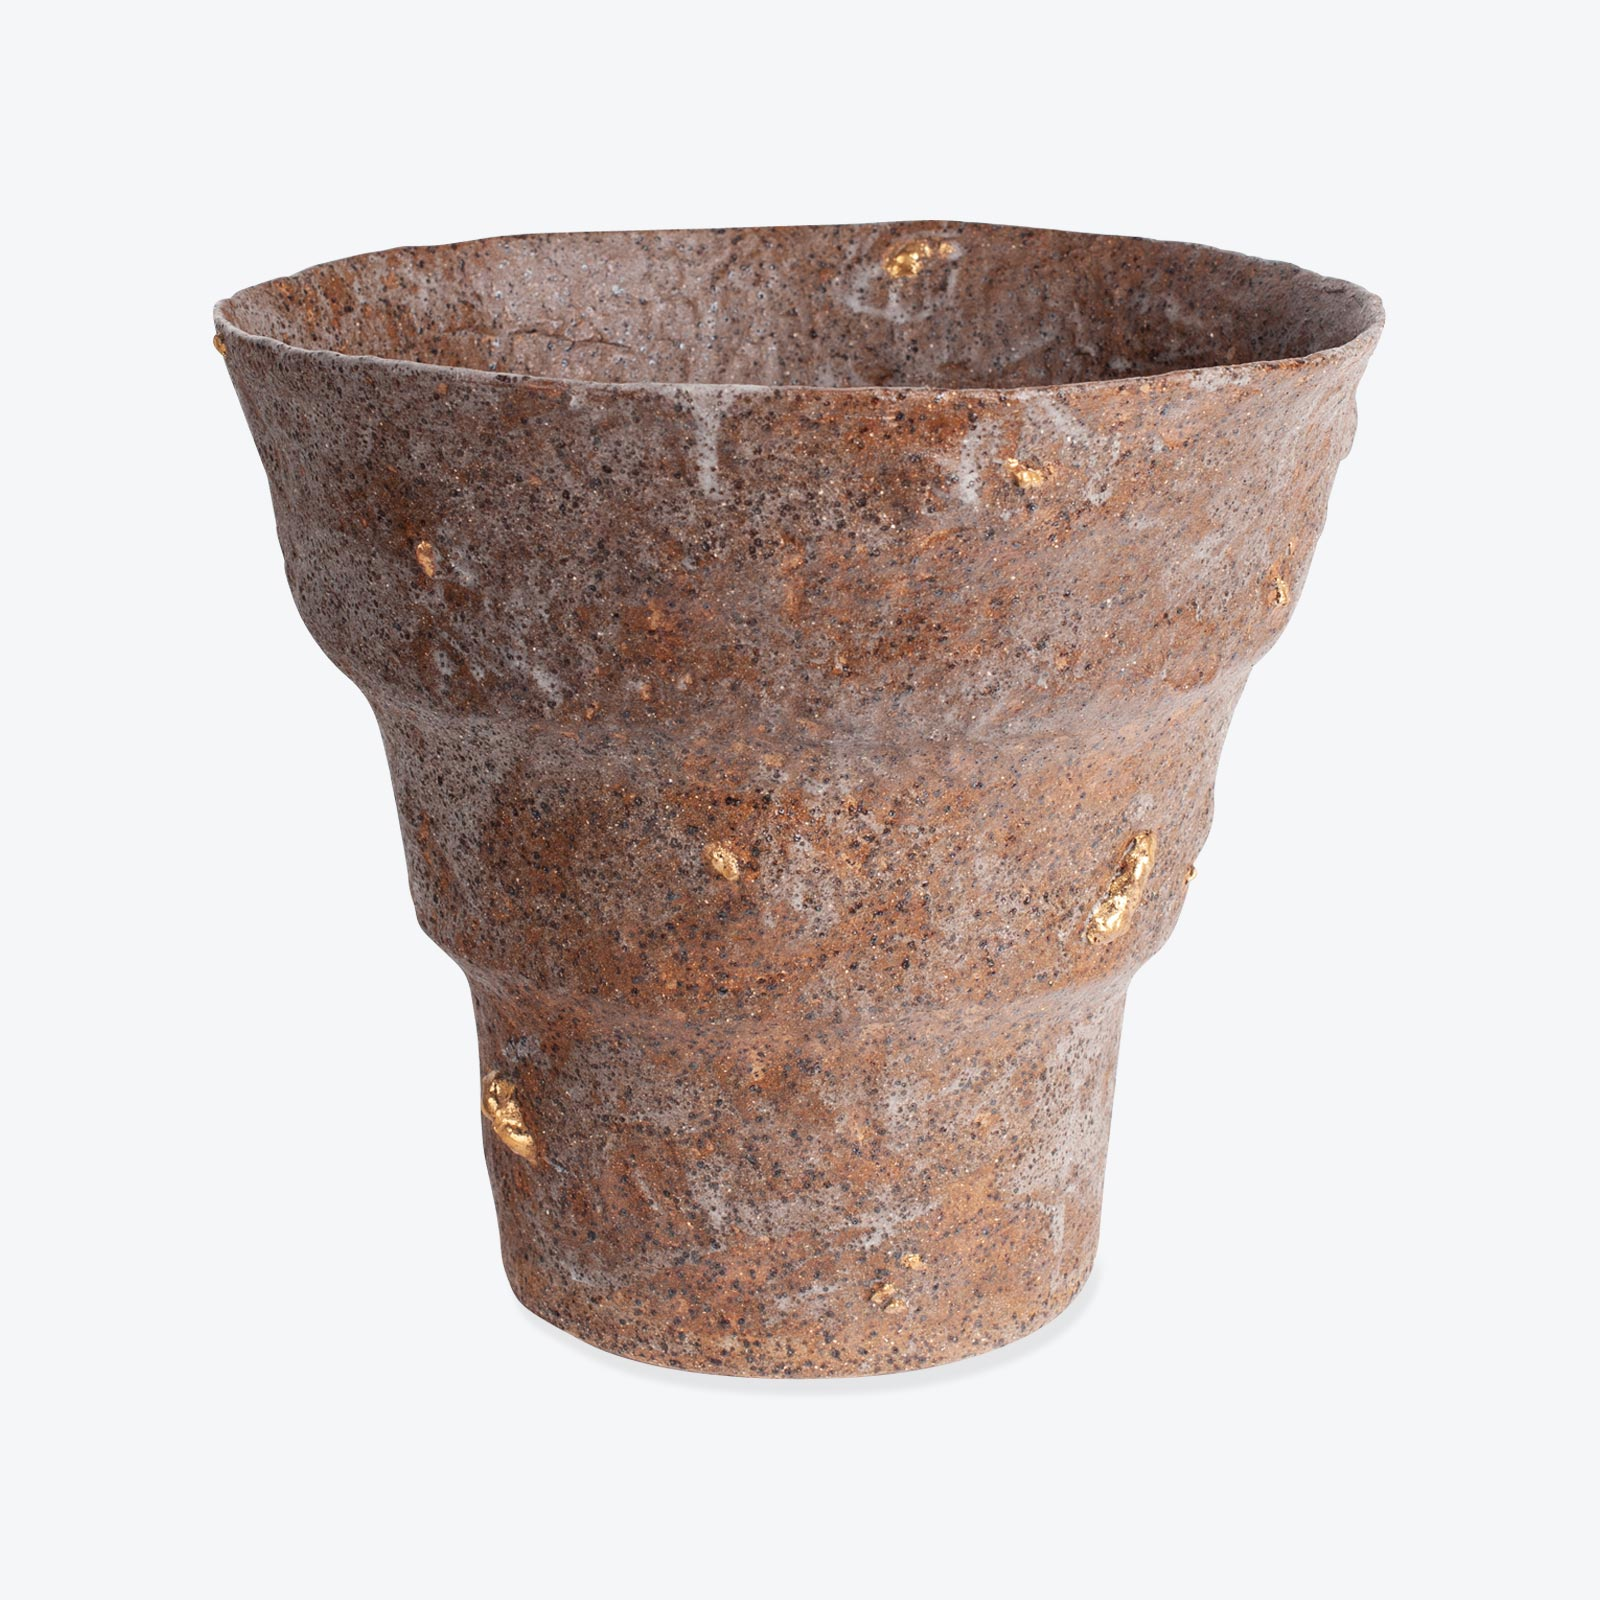 Planter In Glazed Stoneware With 24k Gold By Claudia Lau 01